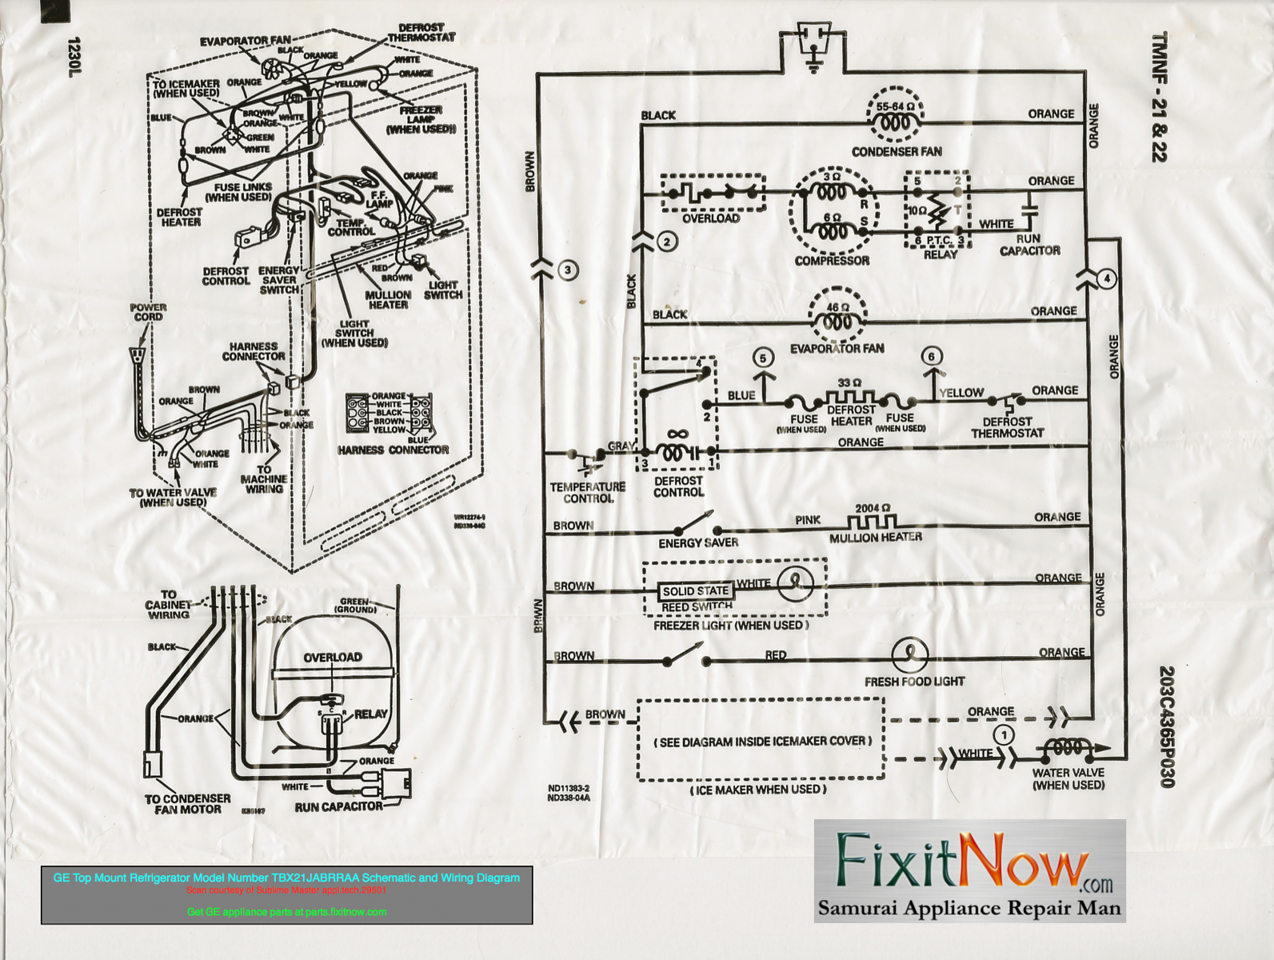 4904374061_e8eb3df6c6_o X2 wiring diagrams and schematics appliantology ge washer wiring diagram at crackthecode.co